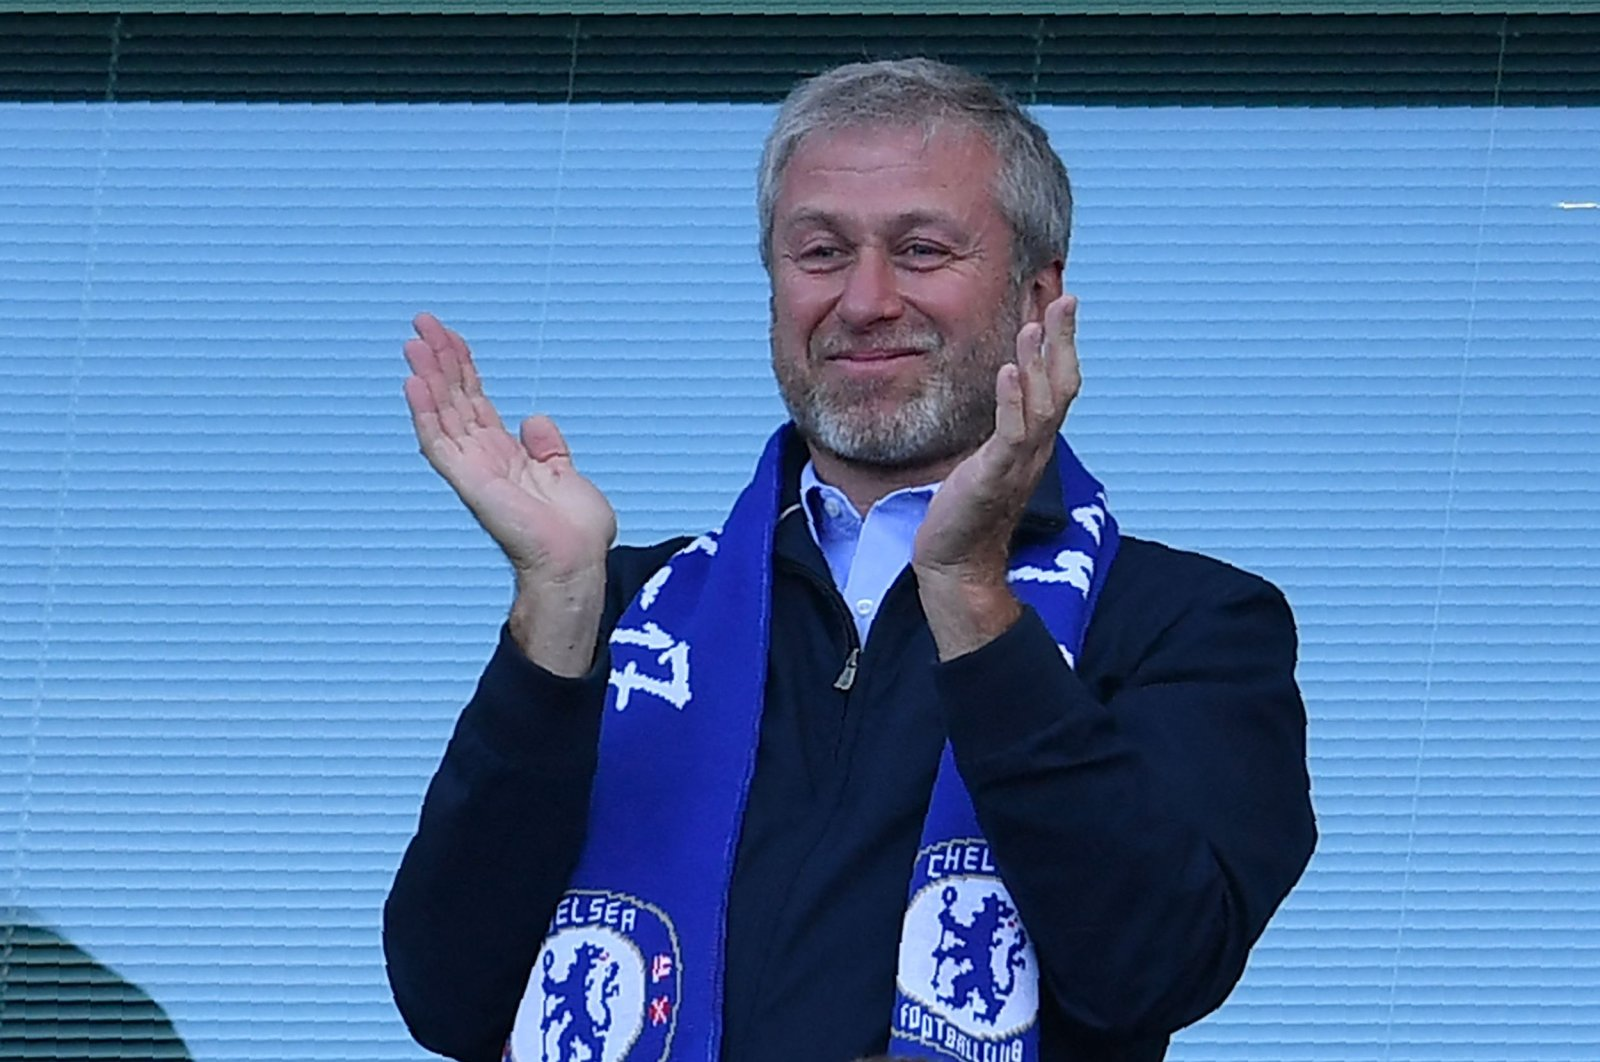 Chelsea's Russian owner Roman Abramovich applauds, as players celebrate their league title win at the end of the Premier League football match between Chelsea and Sunderland at Stamford Bridge in London, May 21, 2017. (AFP Photo)